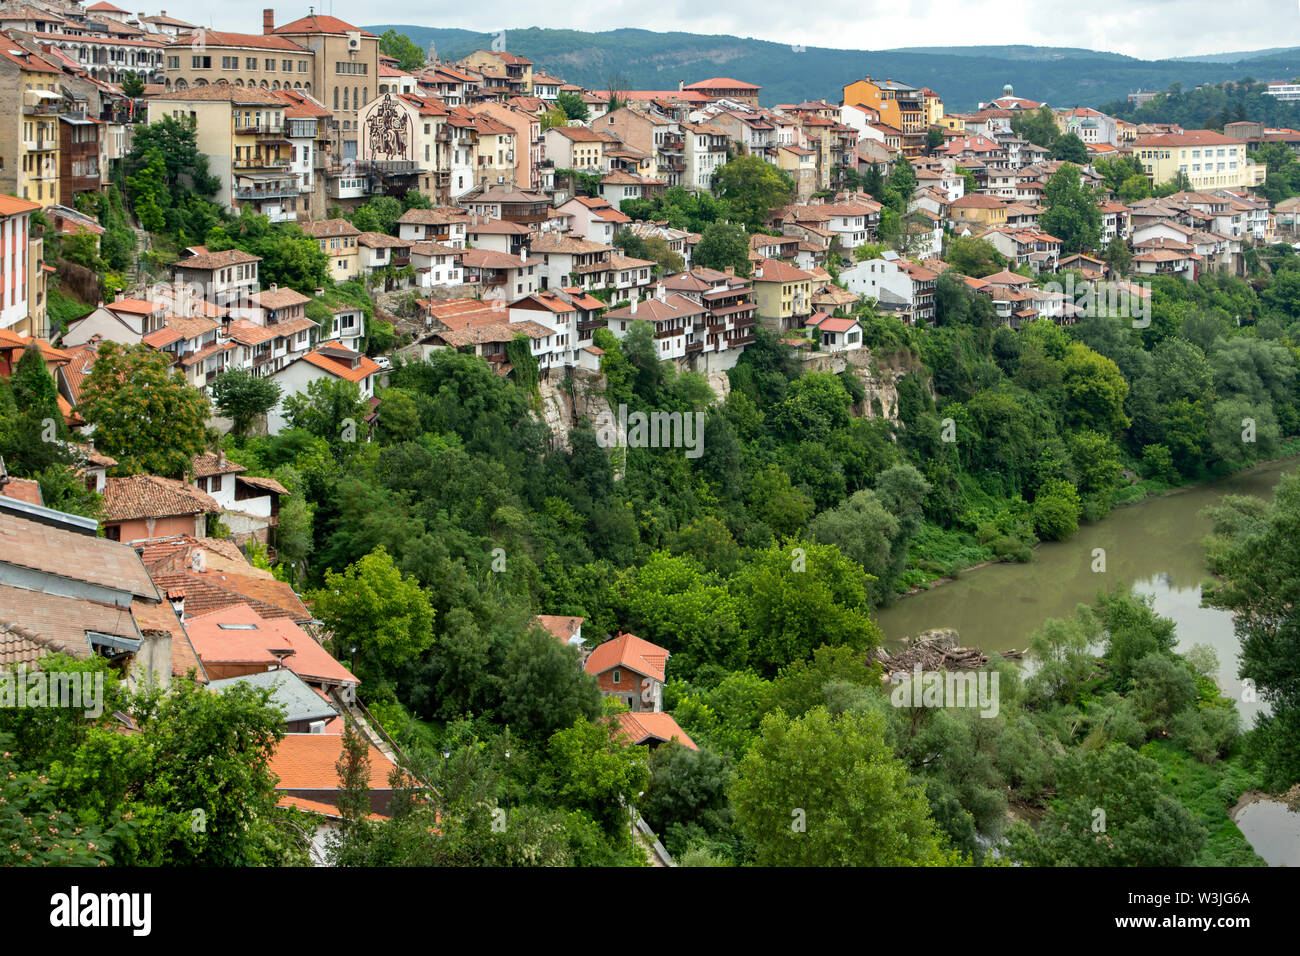 Veliko Tarnovo, Bulgaria Stock Photo